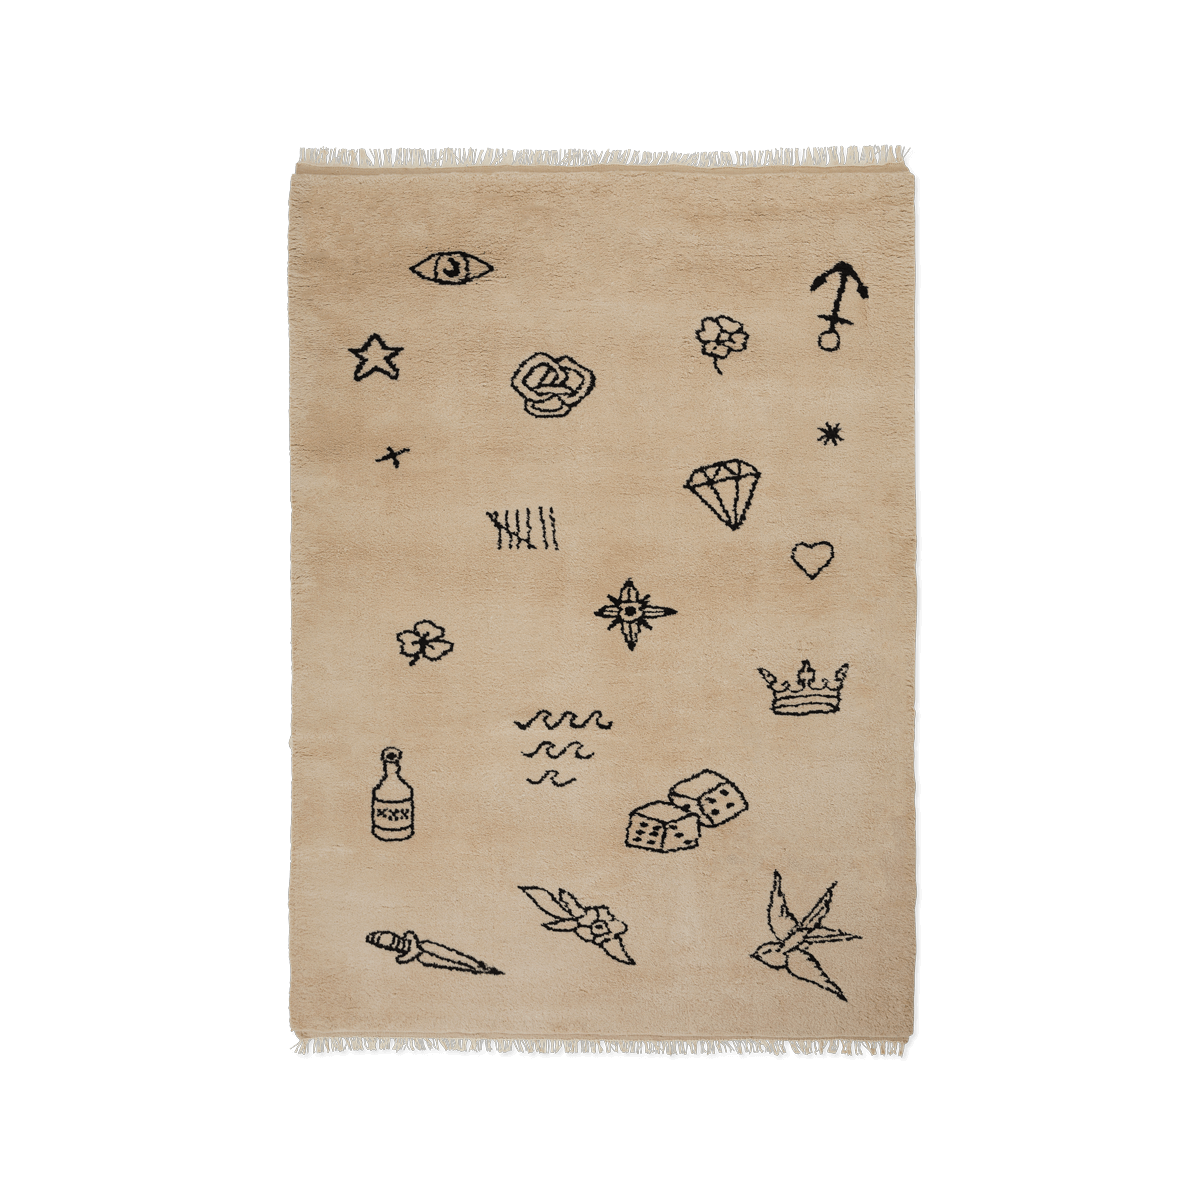 Product image of the shaggy rug Nomad in the color Sand. The rug has a irregular pattern of black classic sailor tattoos spread across it.